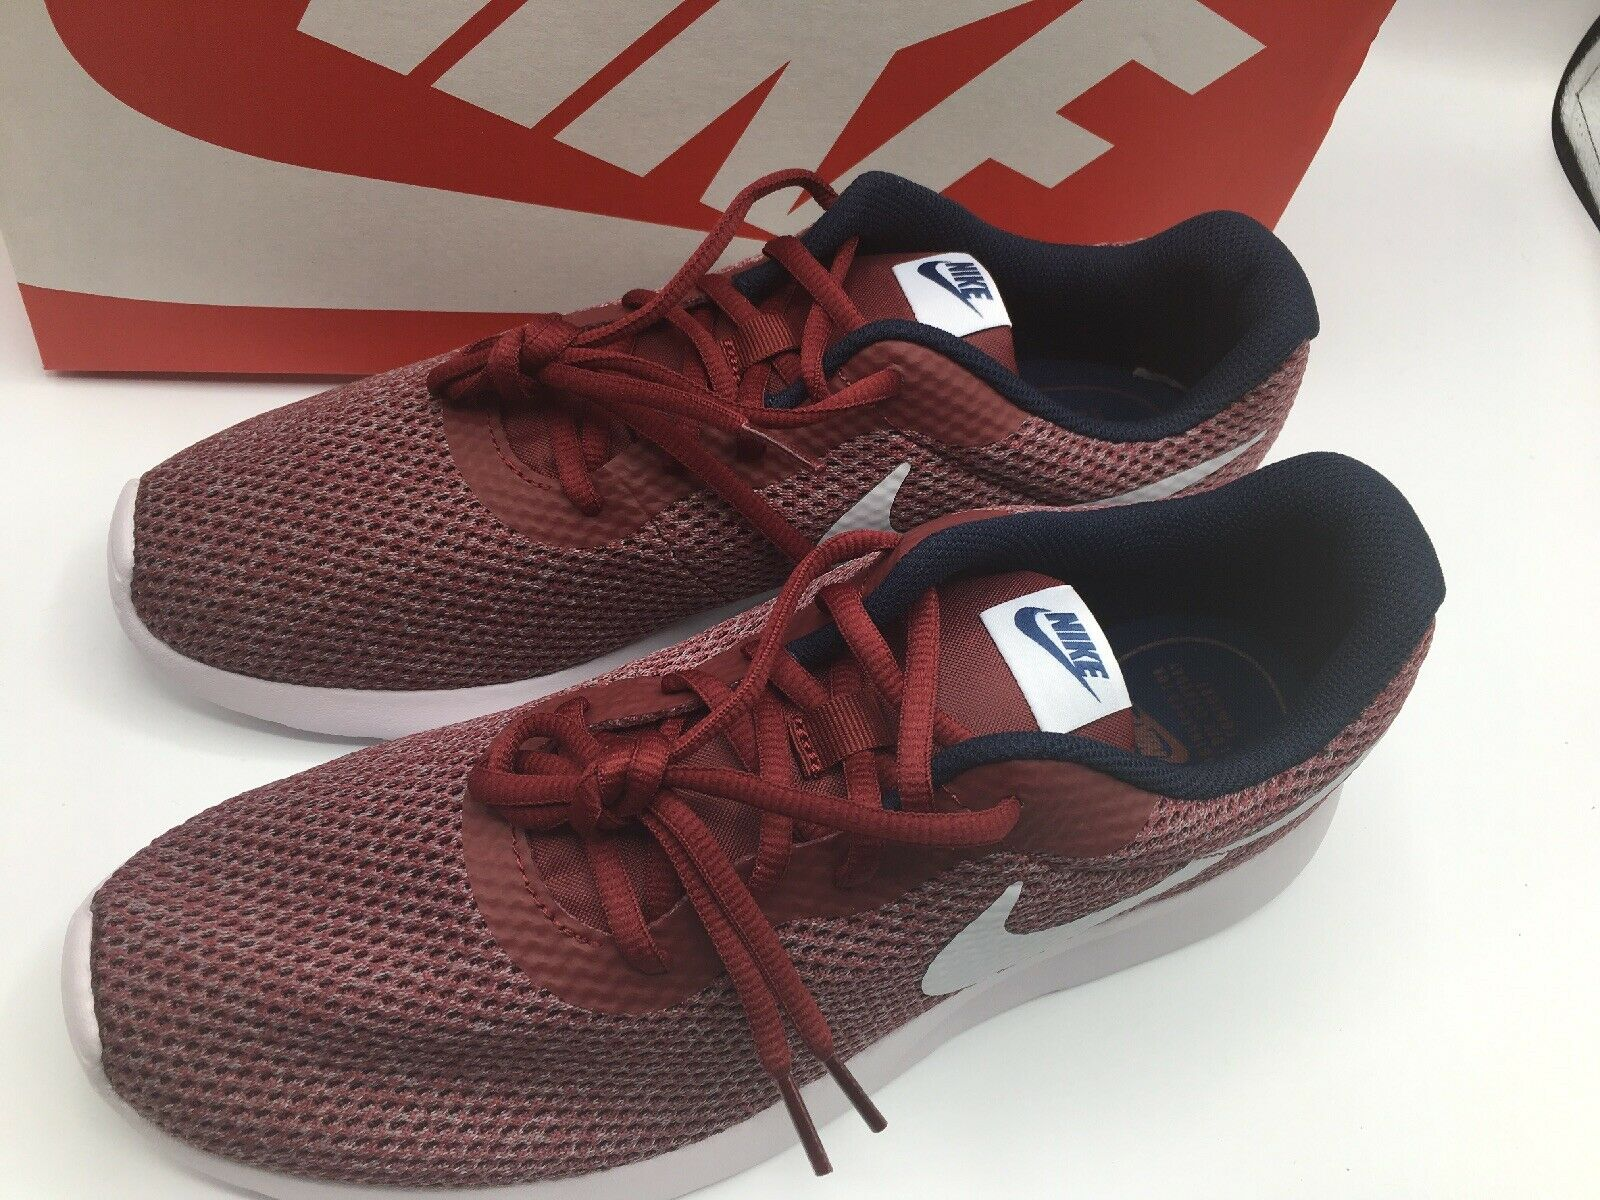 a9bf5990654a ... Nike Nike Nike Tanjun SE Red Grey Obsidian Mens Running shoes Size 11  New in Box ...